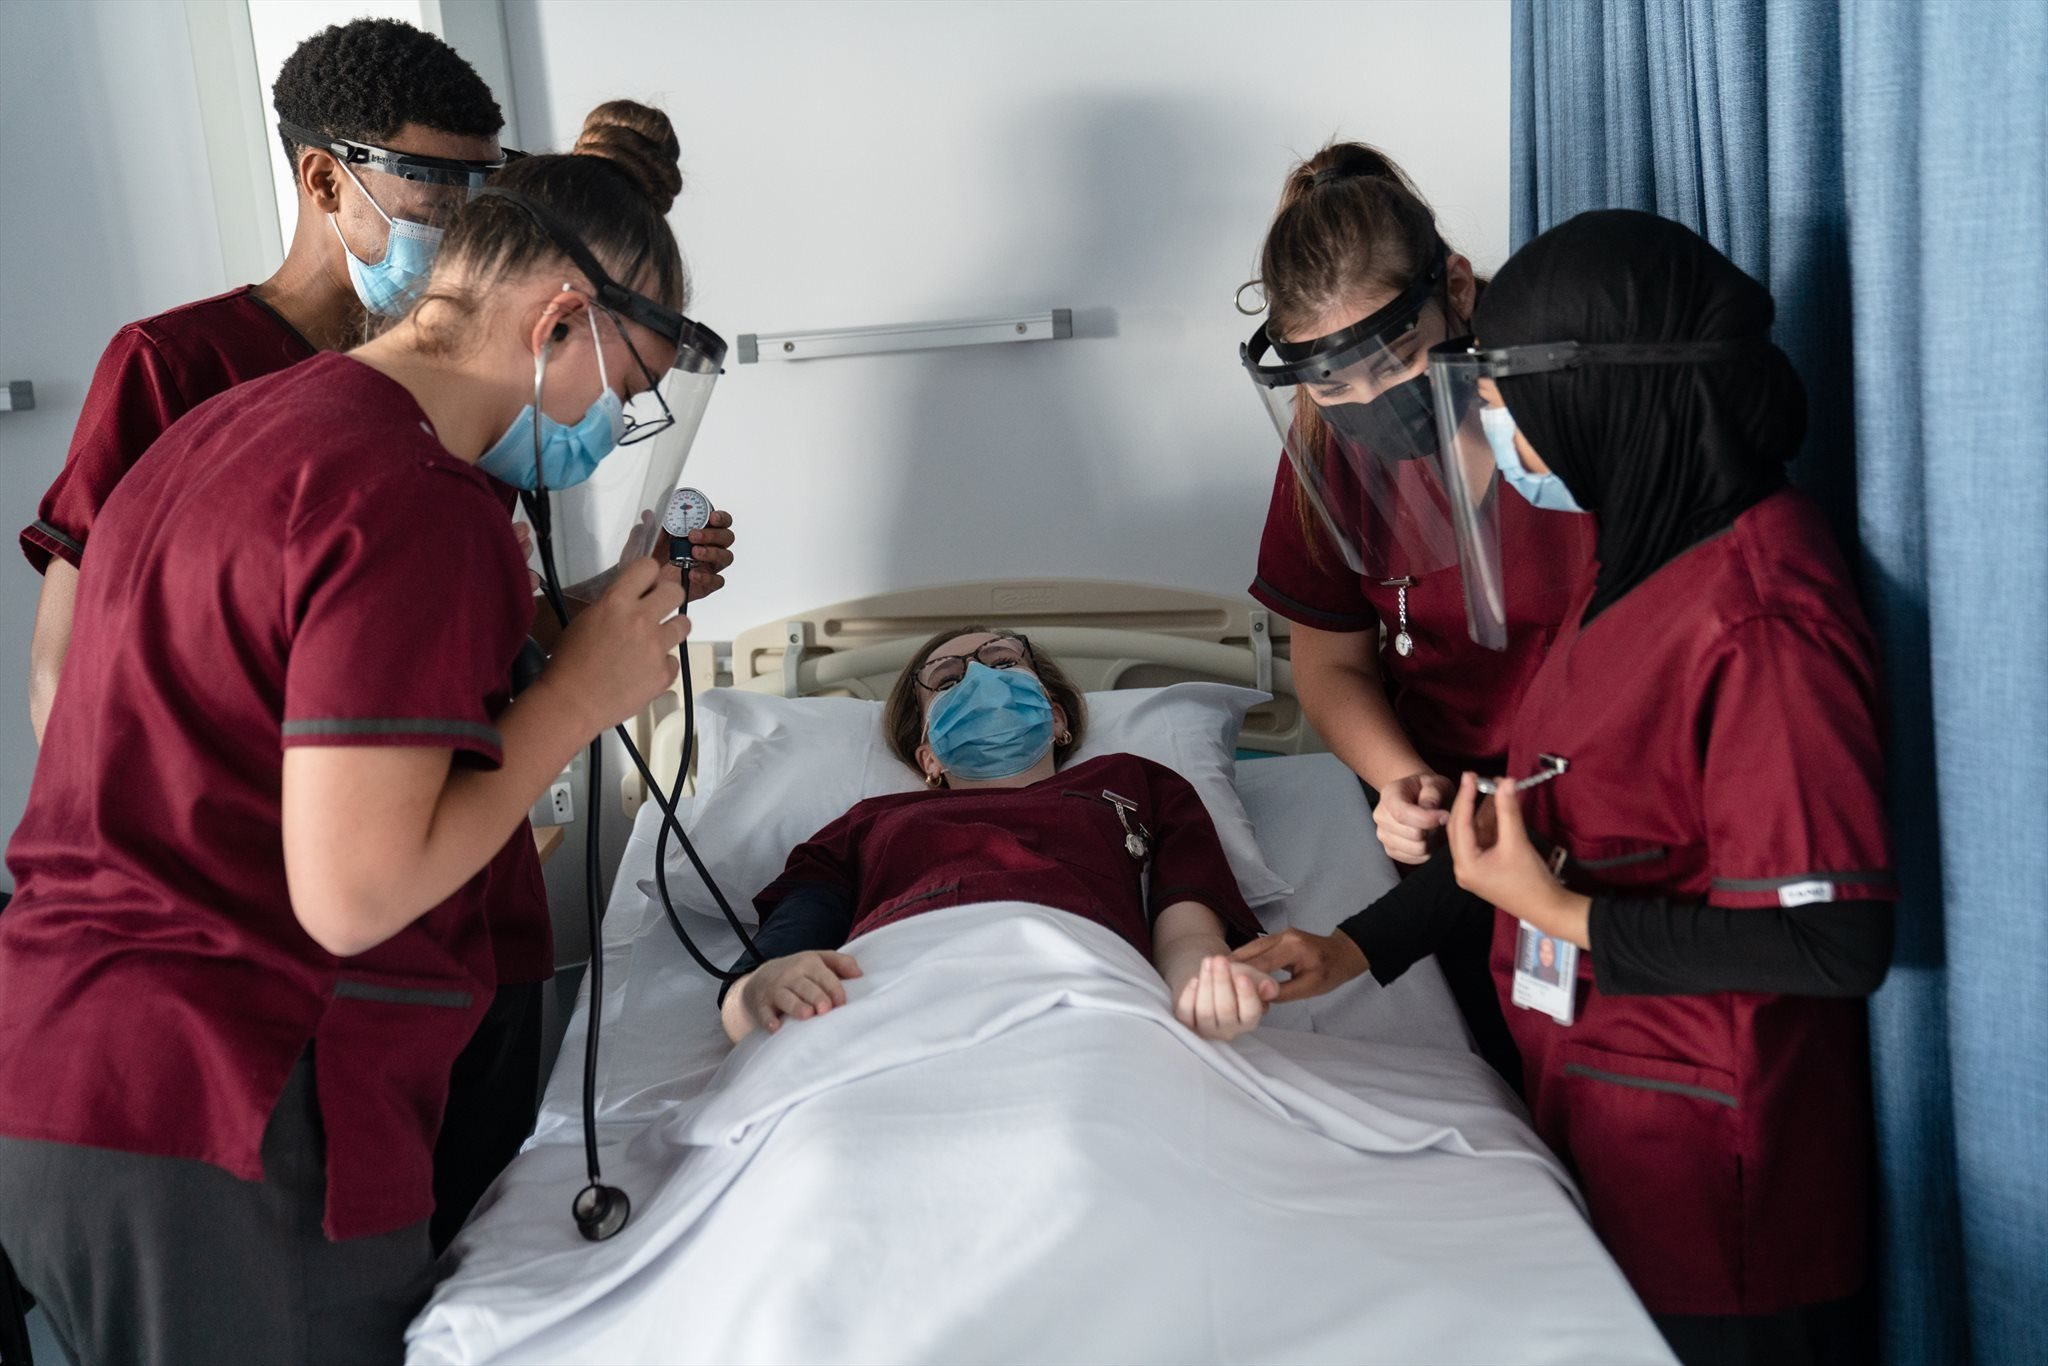 Nursing students practice checking vital signs<br>Image: Supplied